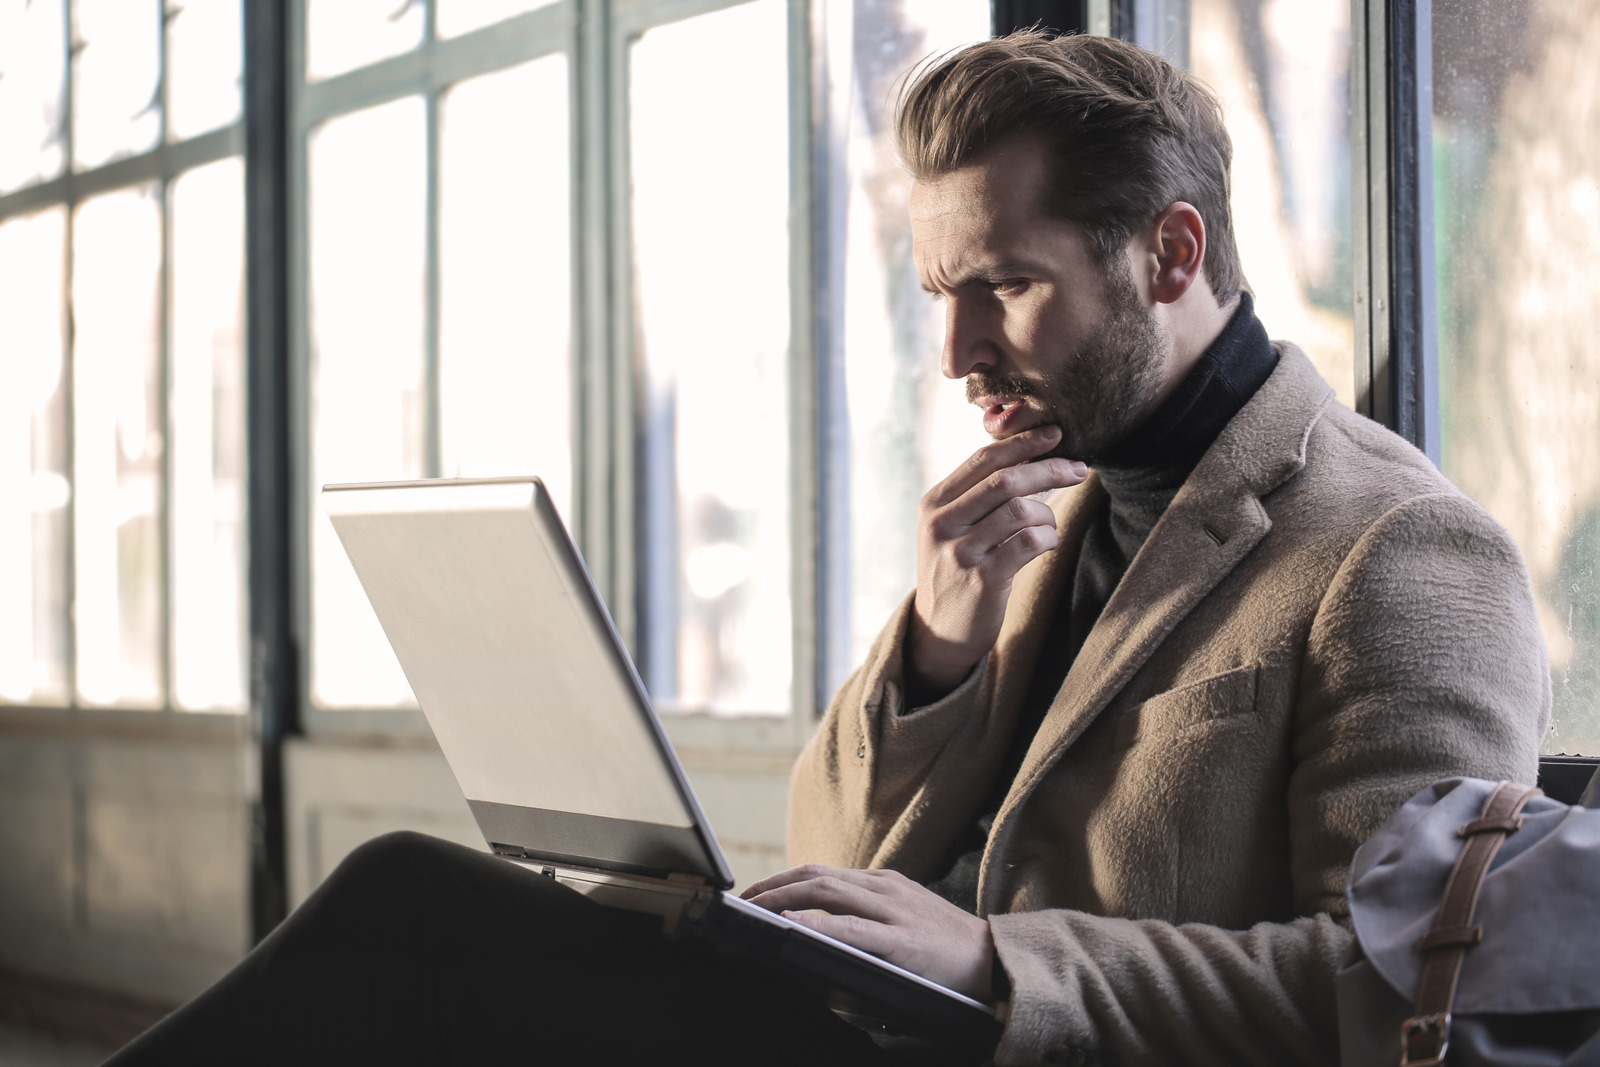 Canva - Man Wearing Brown Jacket and Using Grey Laptop